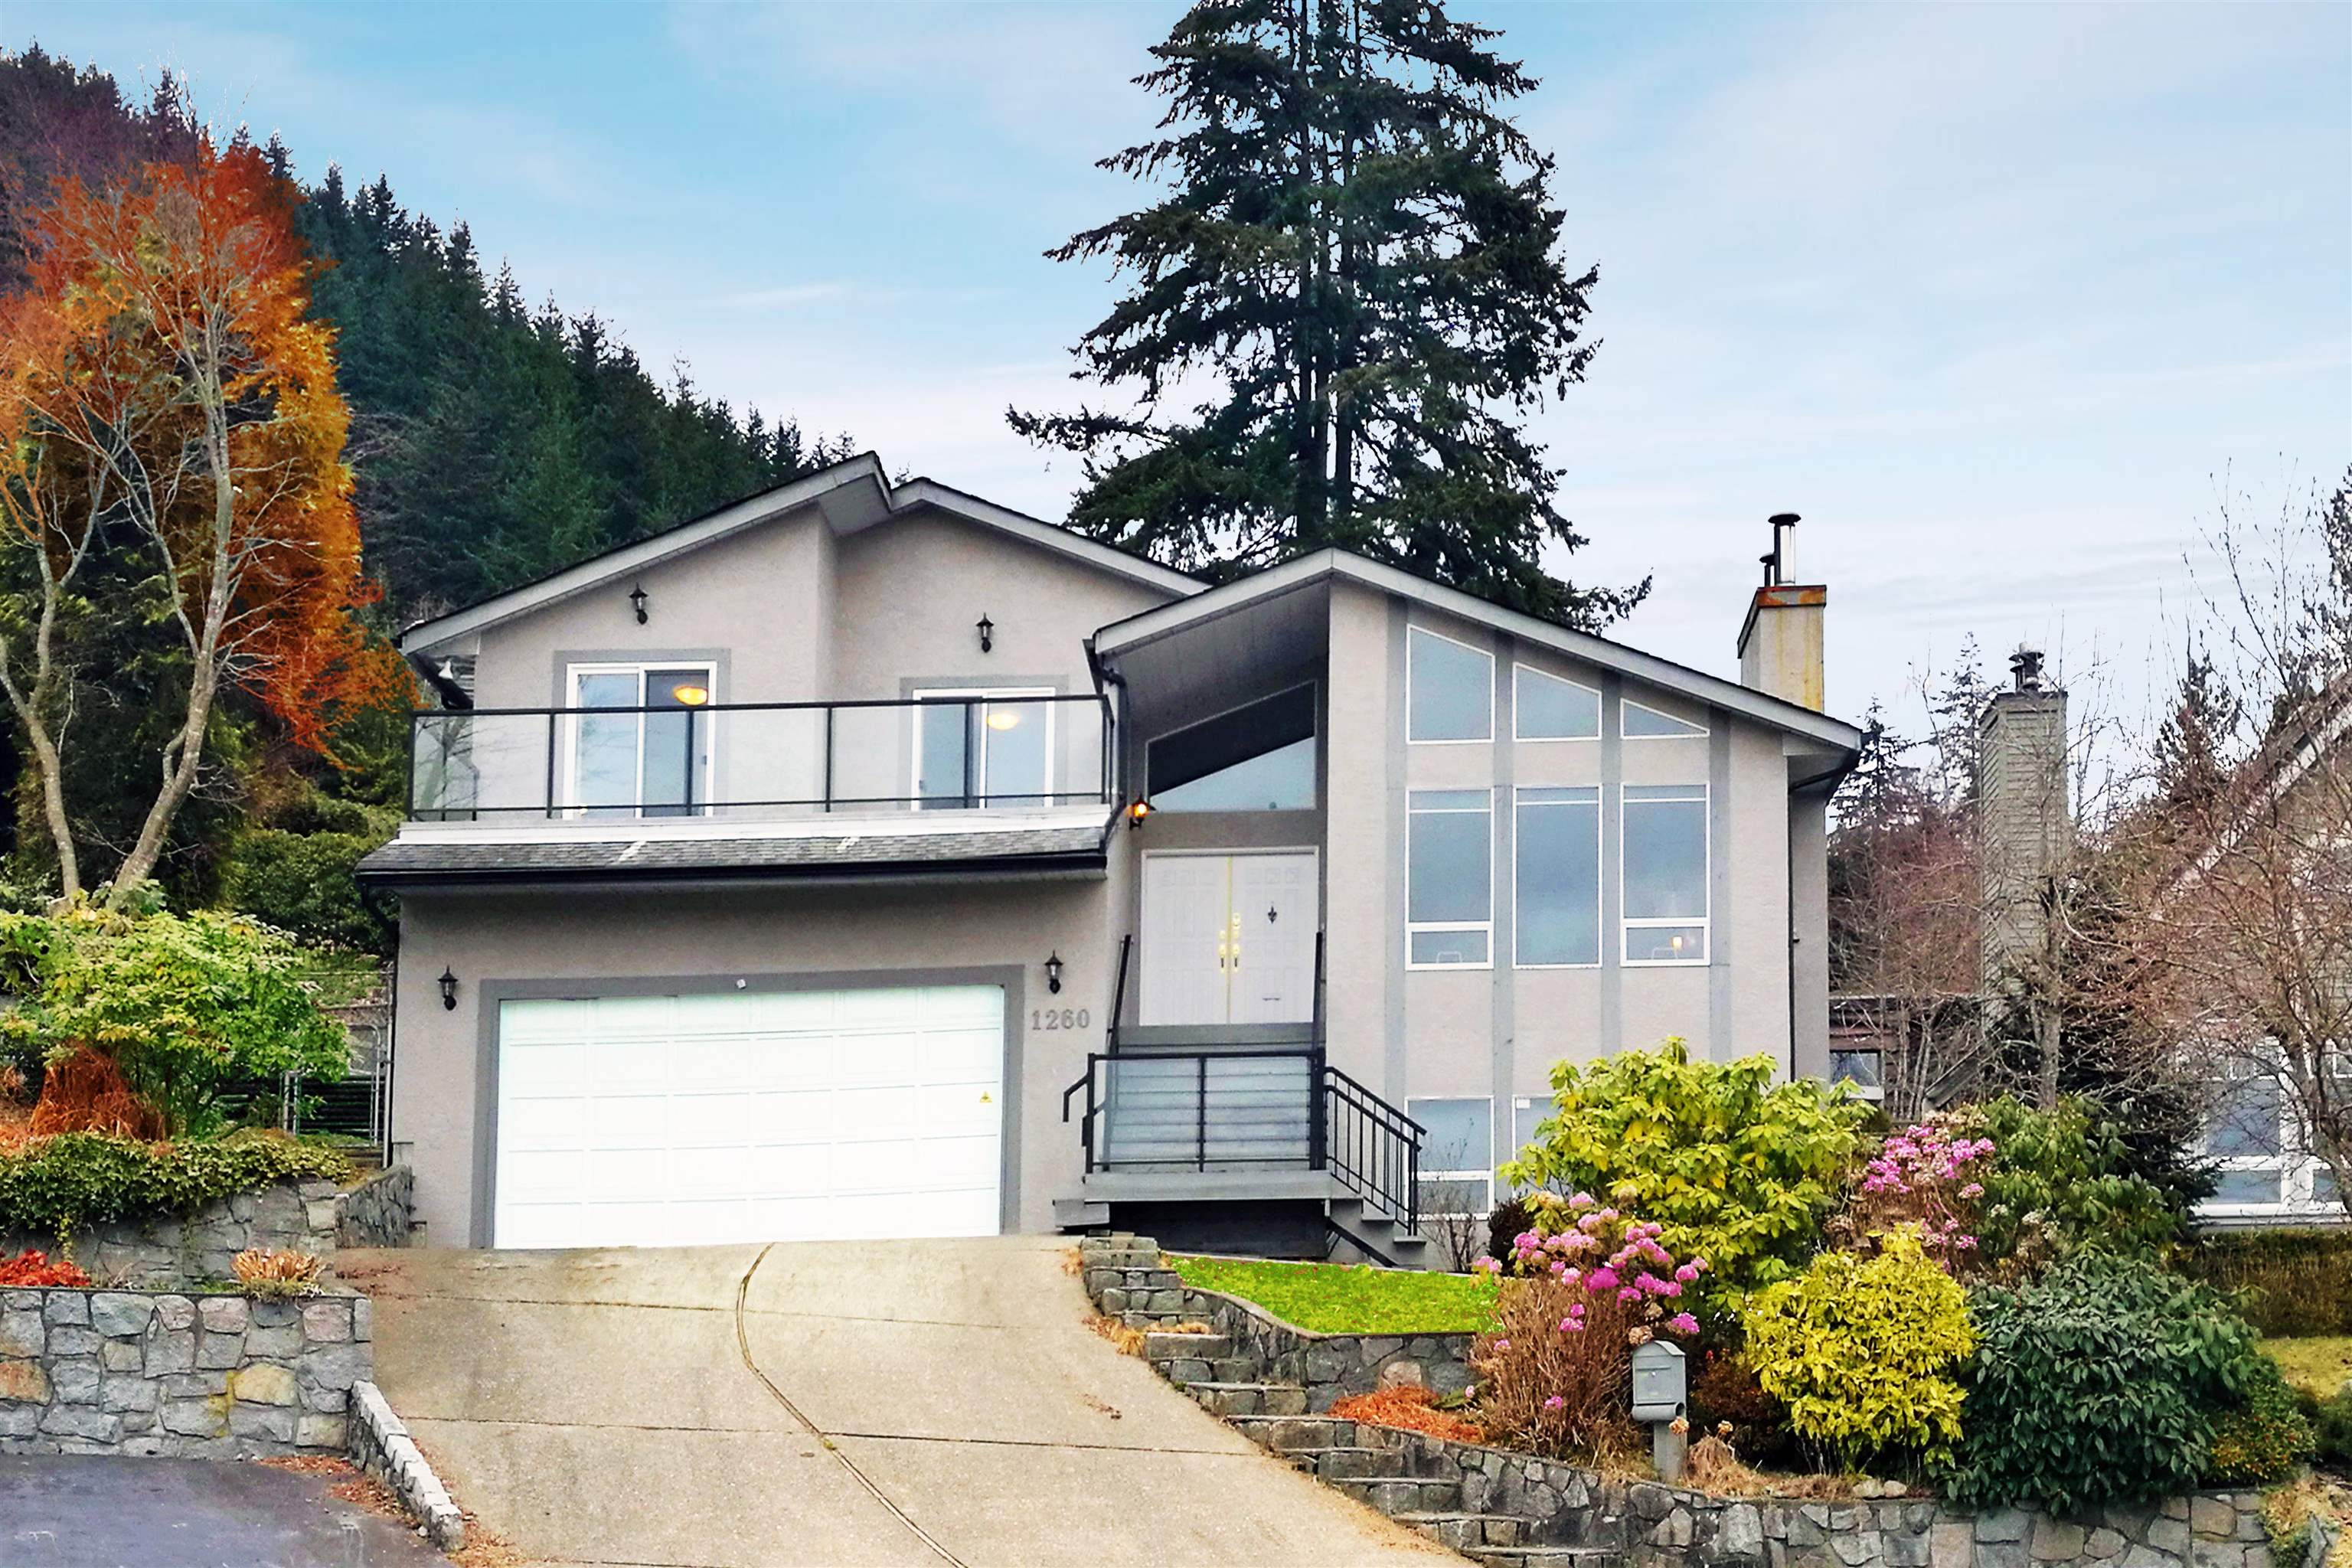 1260 EVELYN STREET - Lynn Valley House/Single Family for sale, 4 Bedrooms (R2628500) - #1